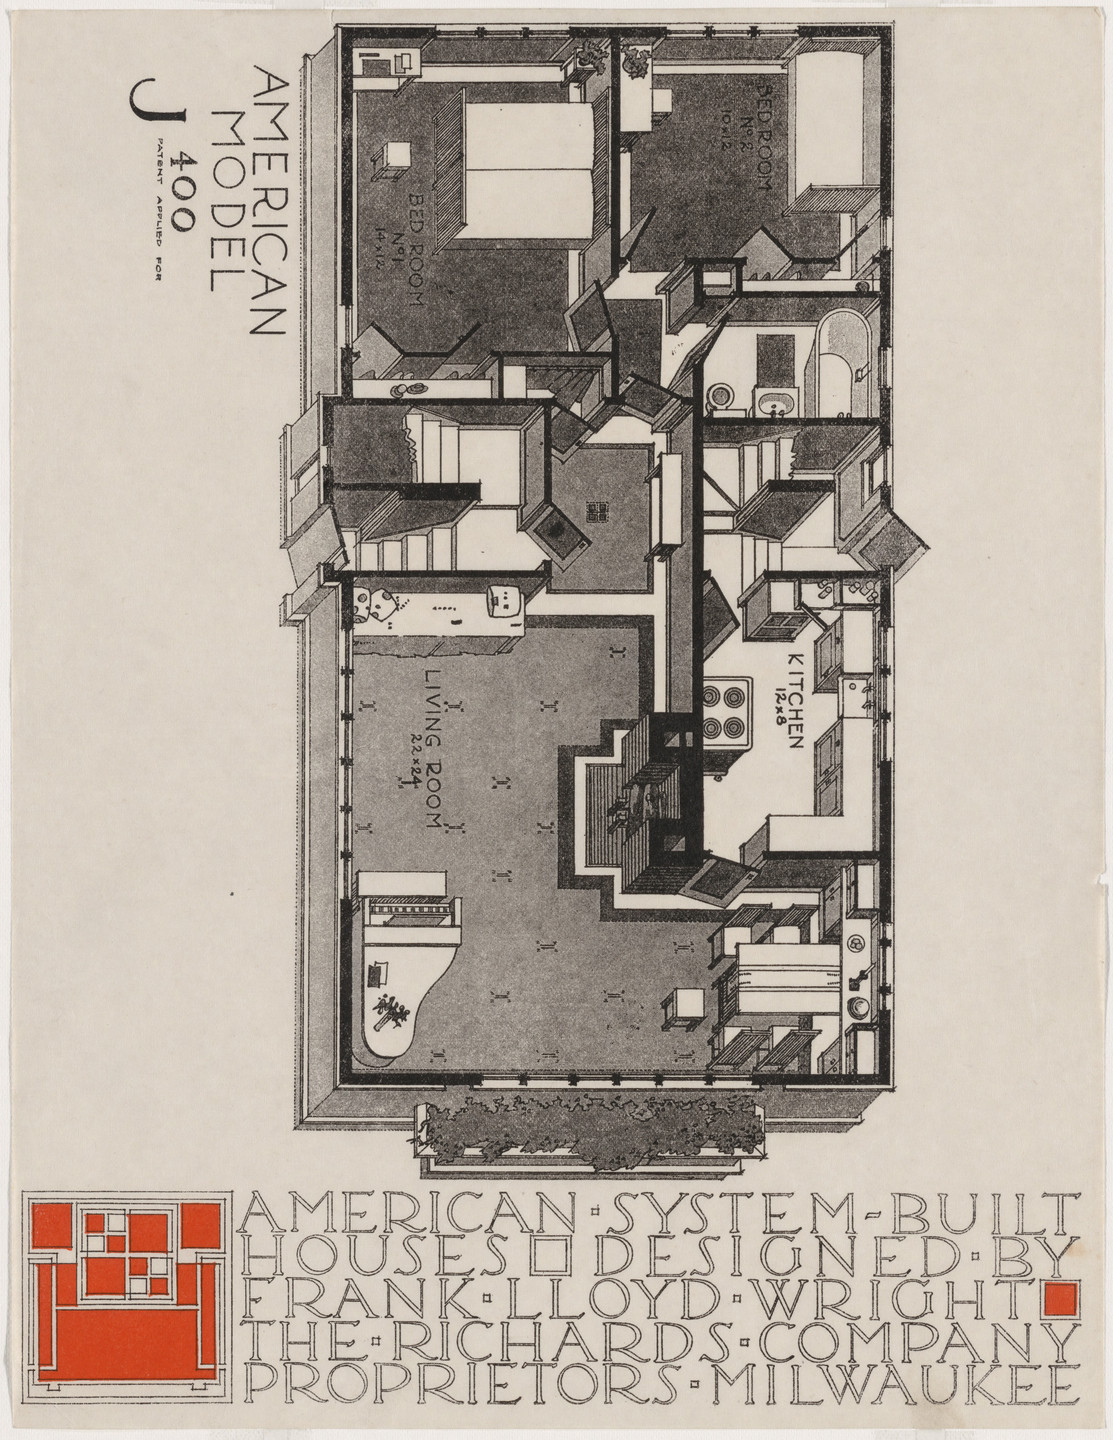 Frank Lloyd Wright. American System-Built Houses for The Richards Company, project, Milwaukee, Wisconsin, Isometric plan of model J400. c. 1915-17